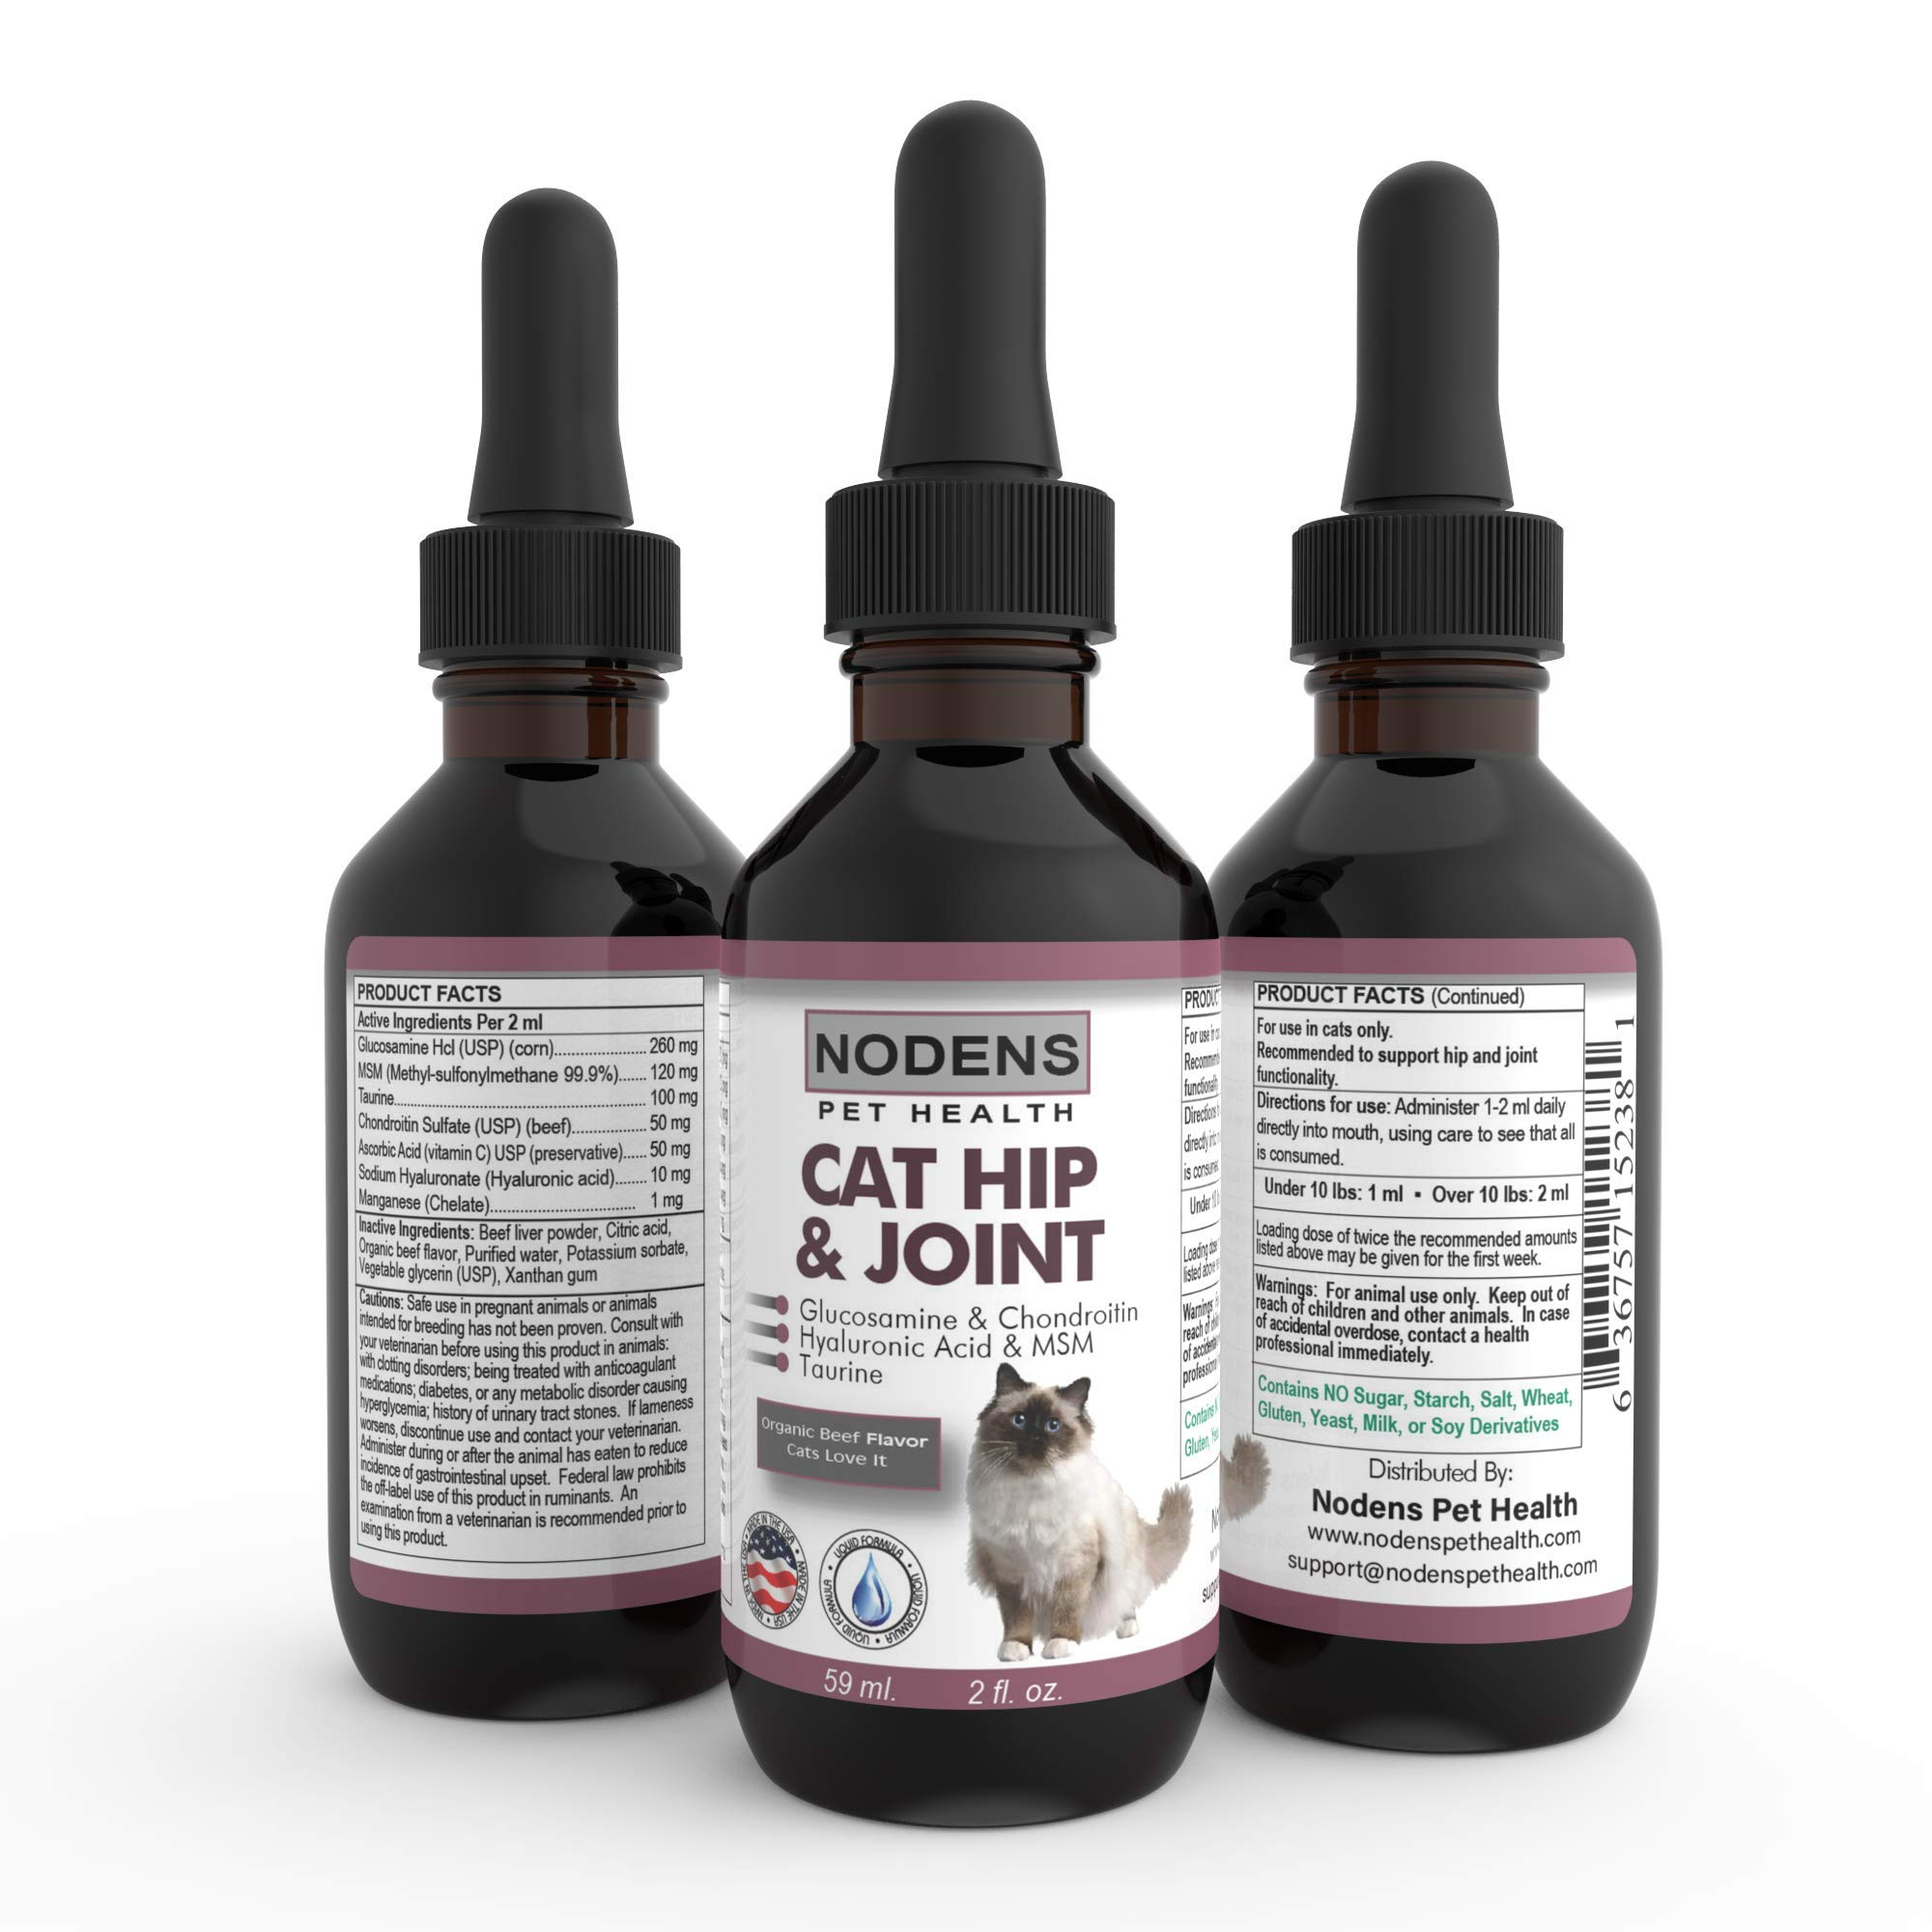 NODENS CAT Hip and Joint Glucosamine for Cats with Chondroitin and Opti-MSM Hyaluronic Acid for Improved Joint Flexibility and Pain Relief from Inflammation and Arthritis 2 floz by NODENS® - Pet Health